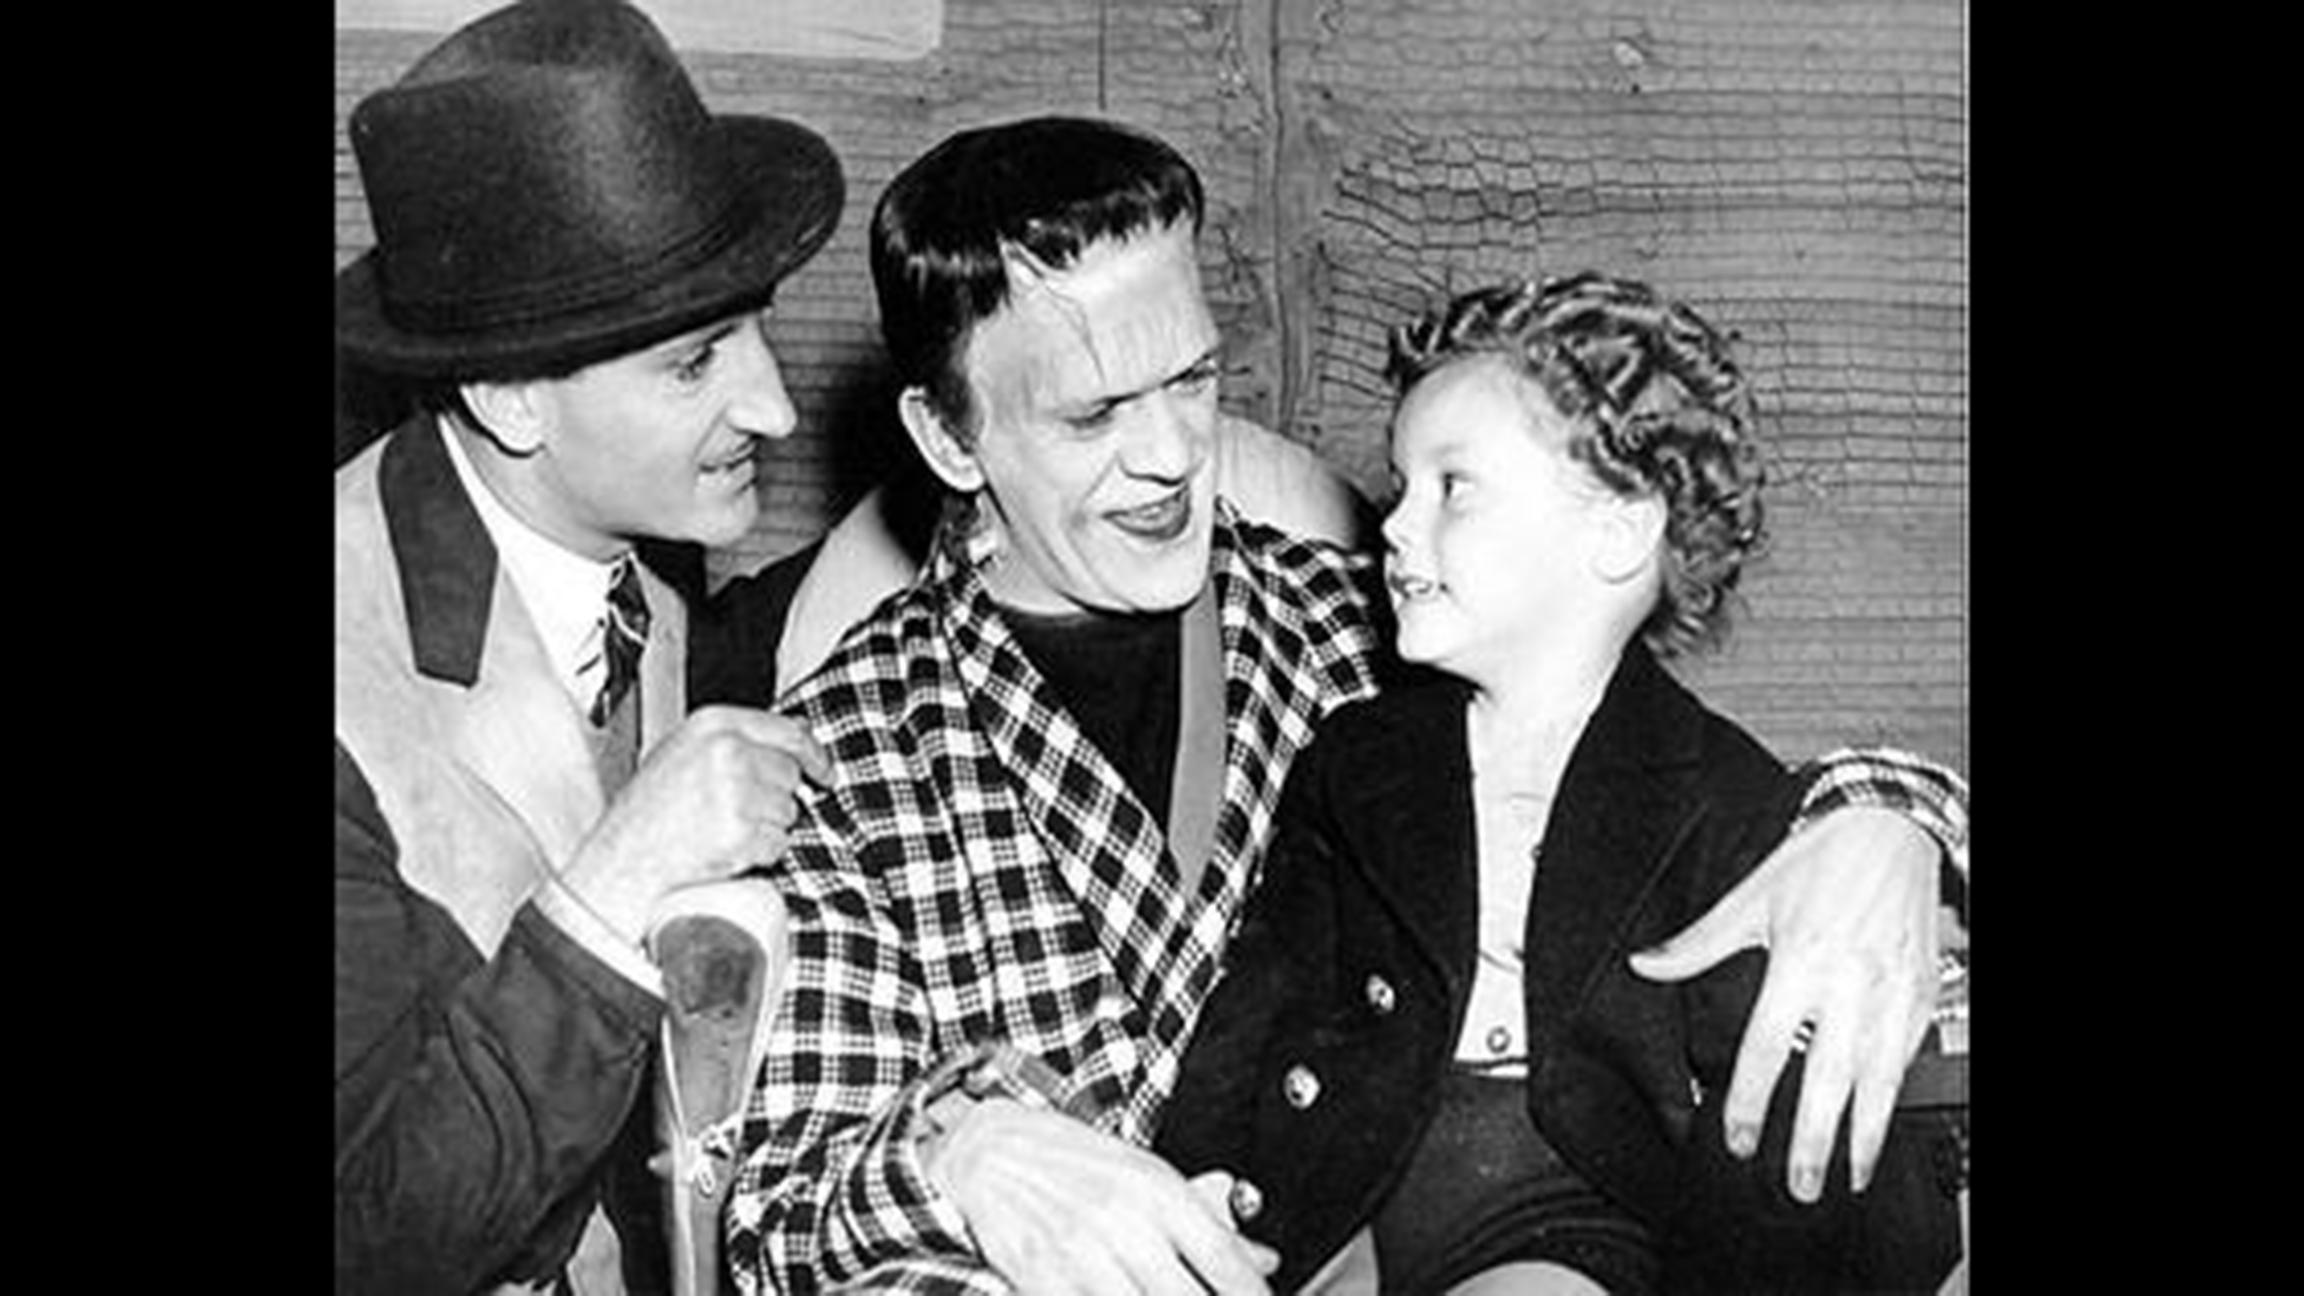 Donnie Dunagan on set with Boris Karloff and Basil Rathbone